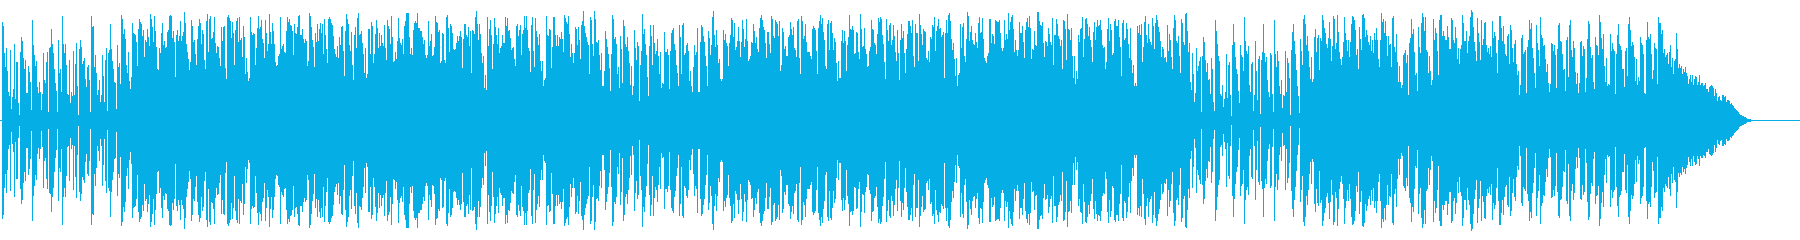 A bright and fun song's reproduced waveform